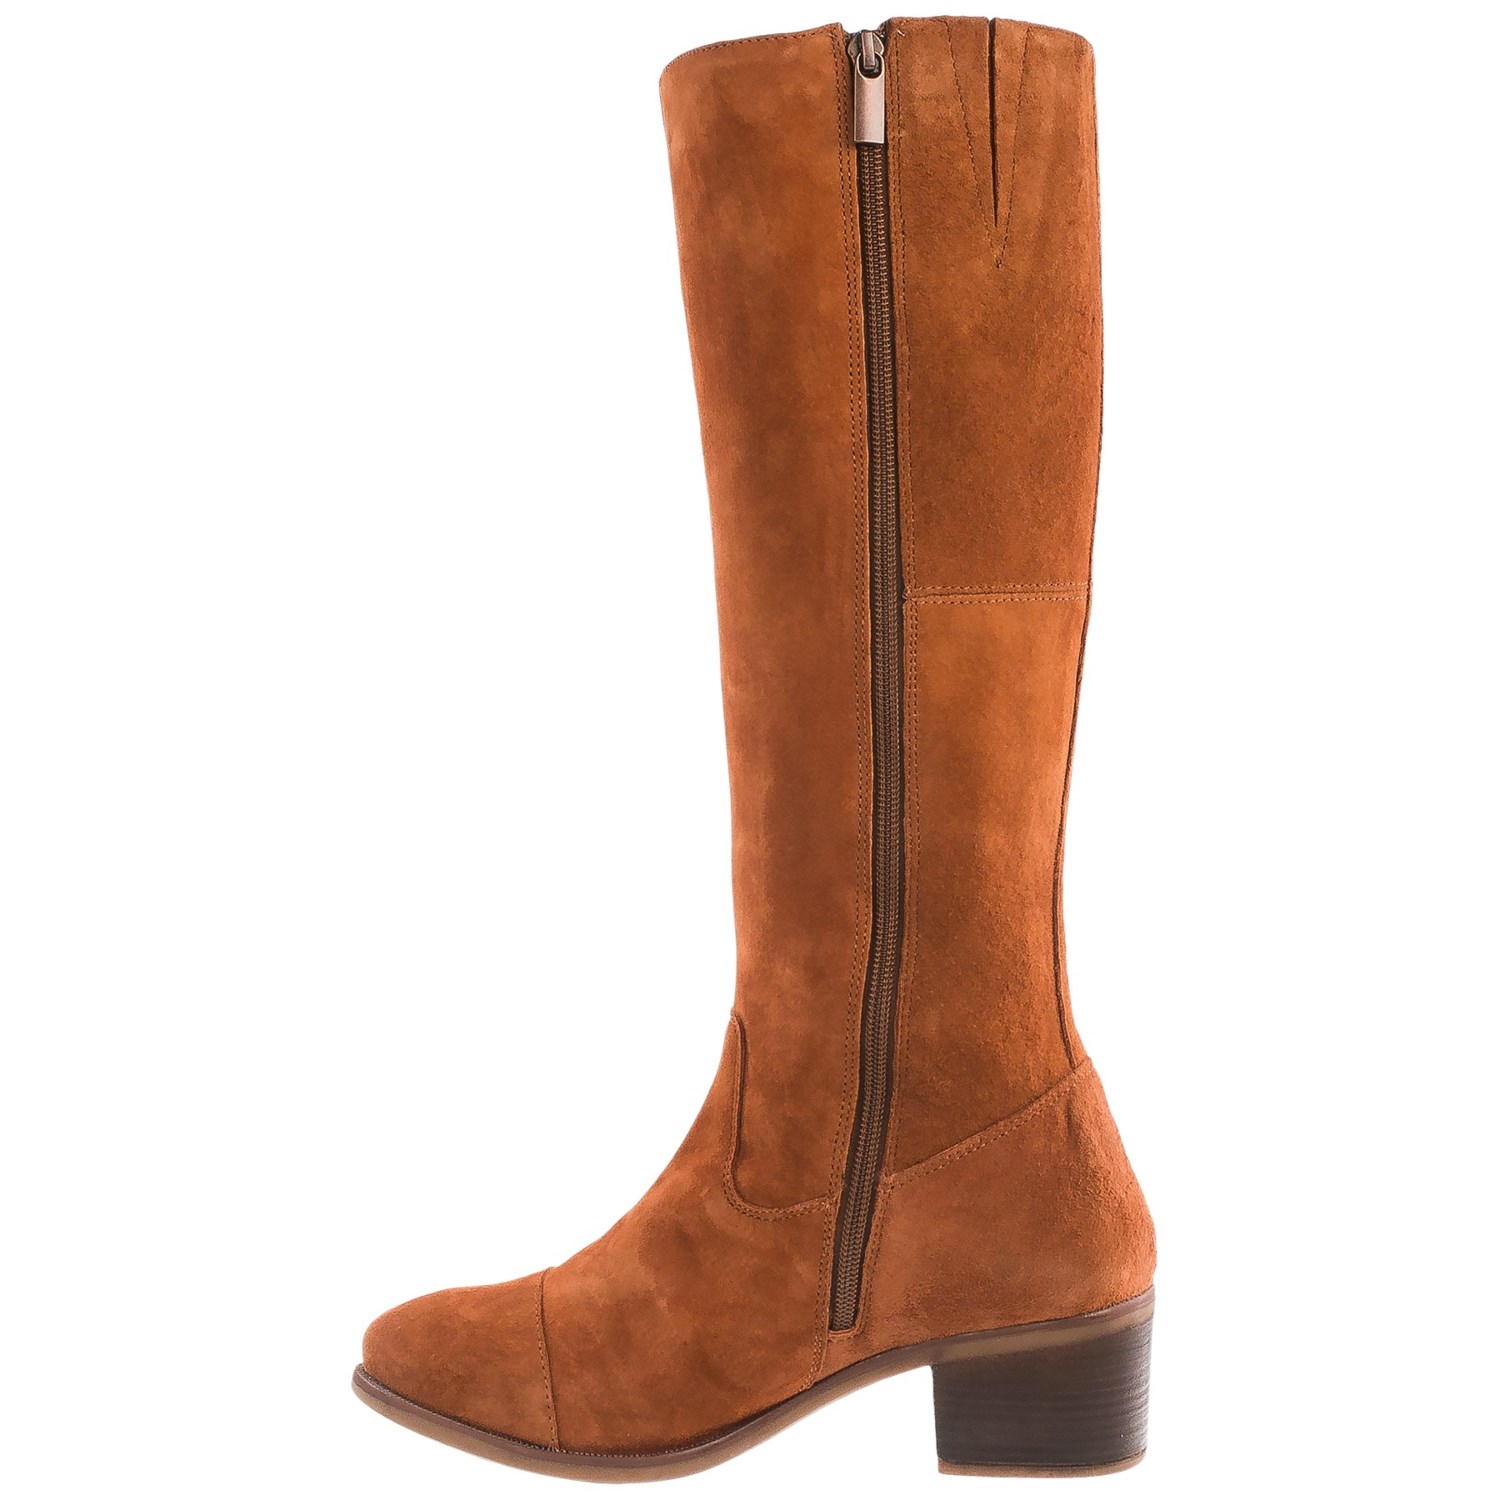 Hush Puppies Ideal Nellie Boots (For Women) - Save 86%